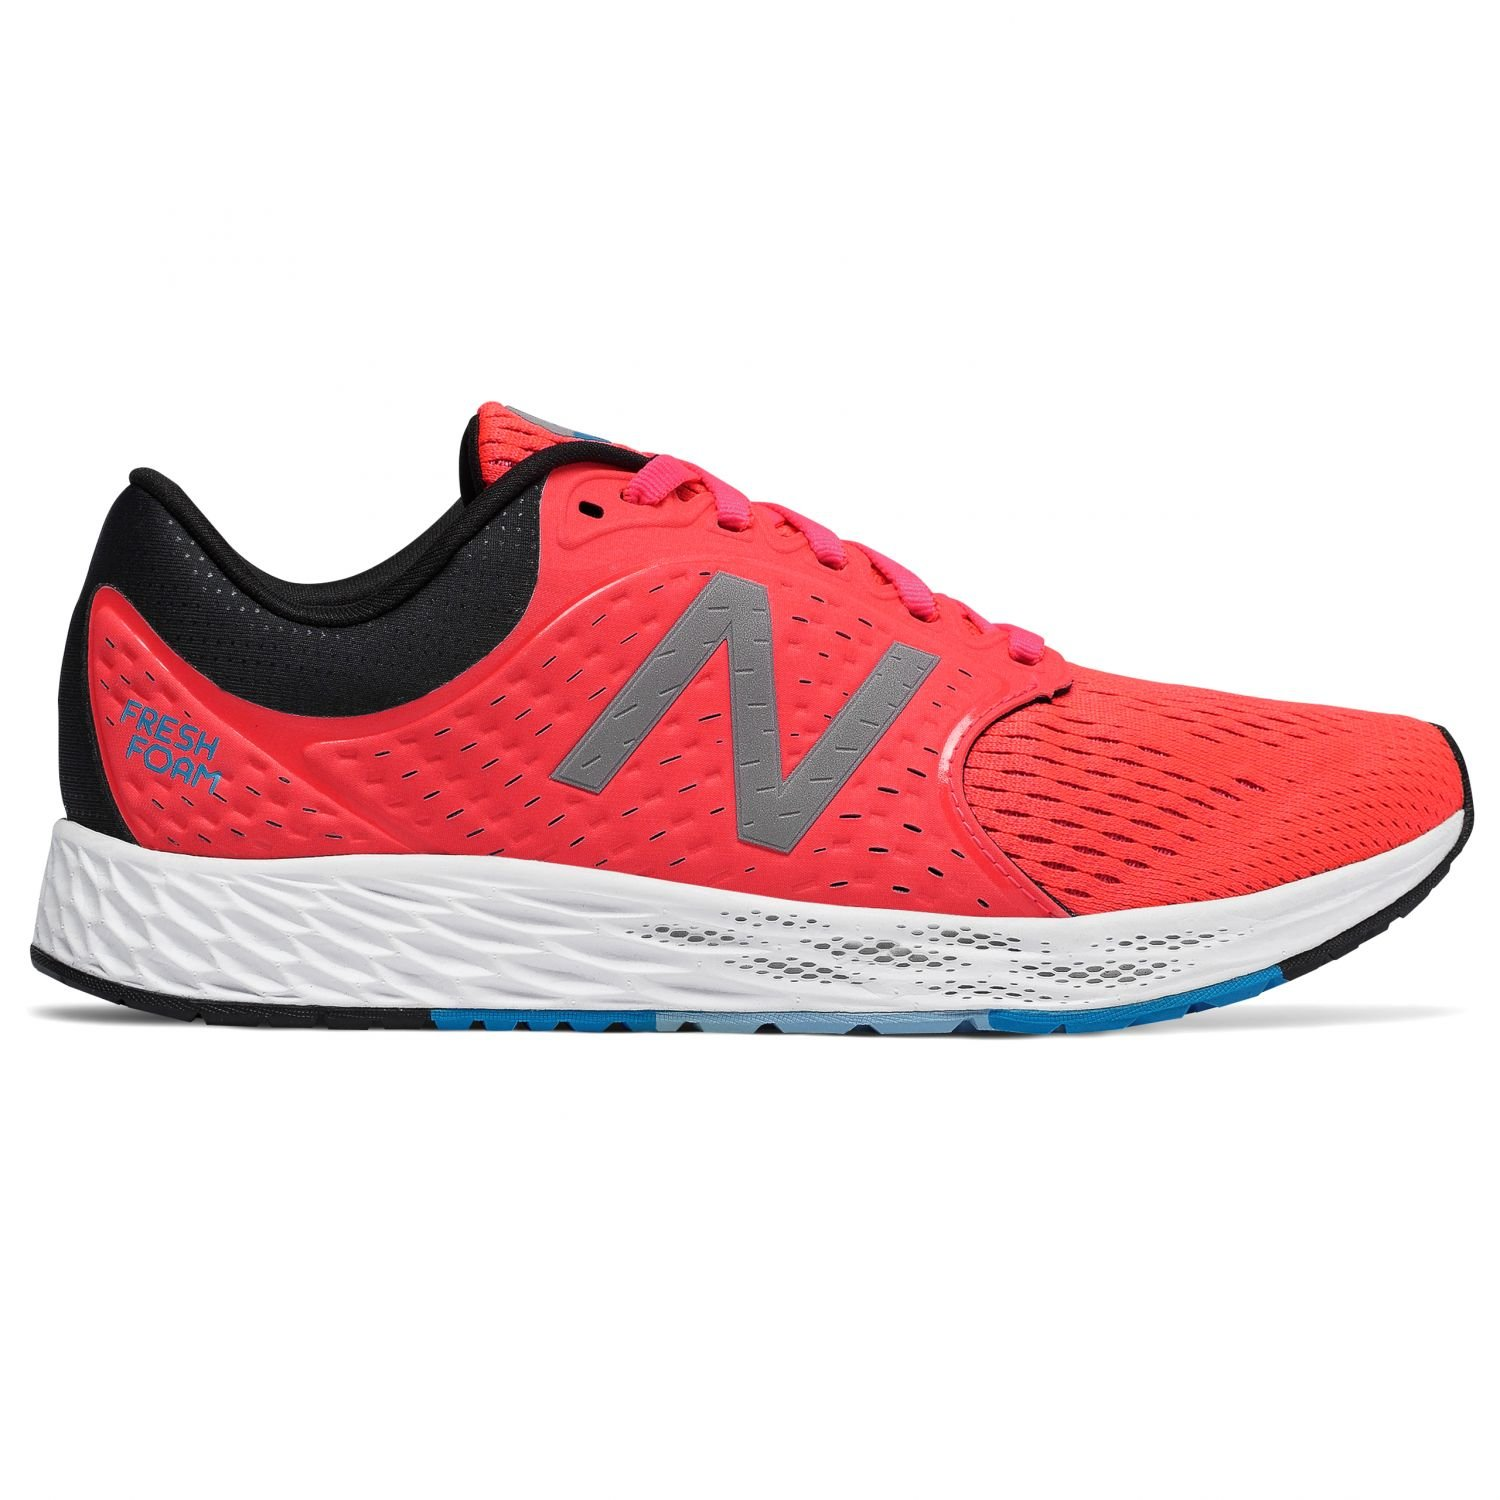 New Balance Damen Fresh Foam Zante V4 Laufschuhe, Rose, 38 EU